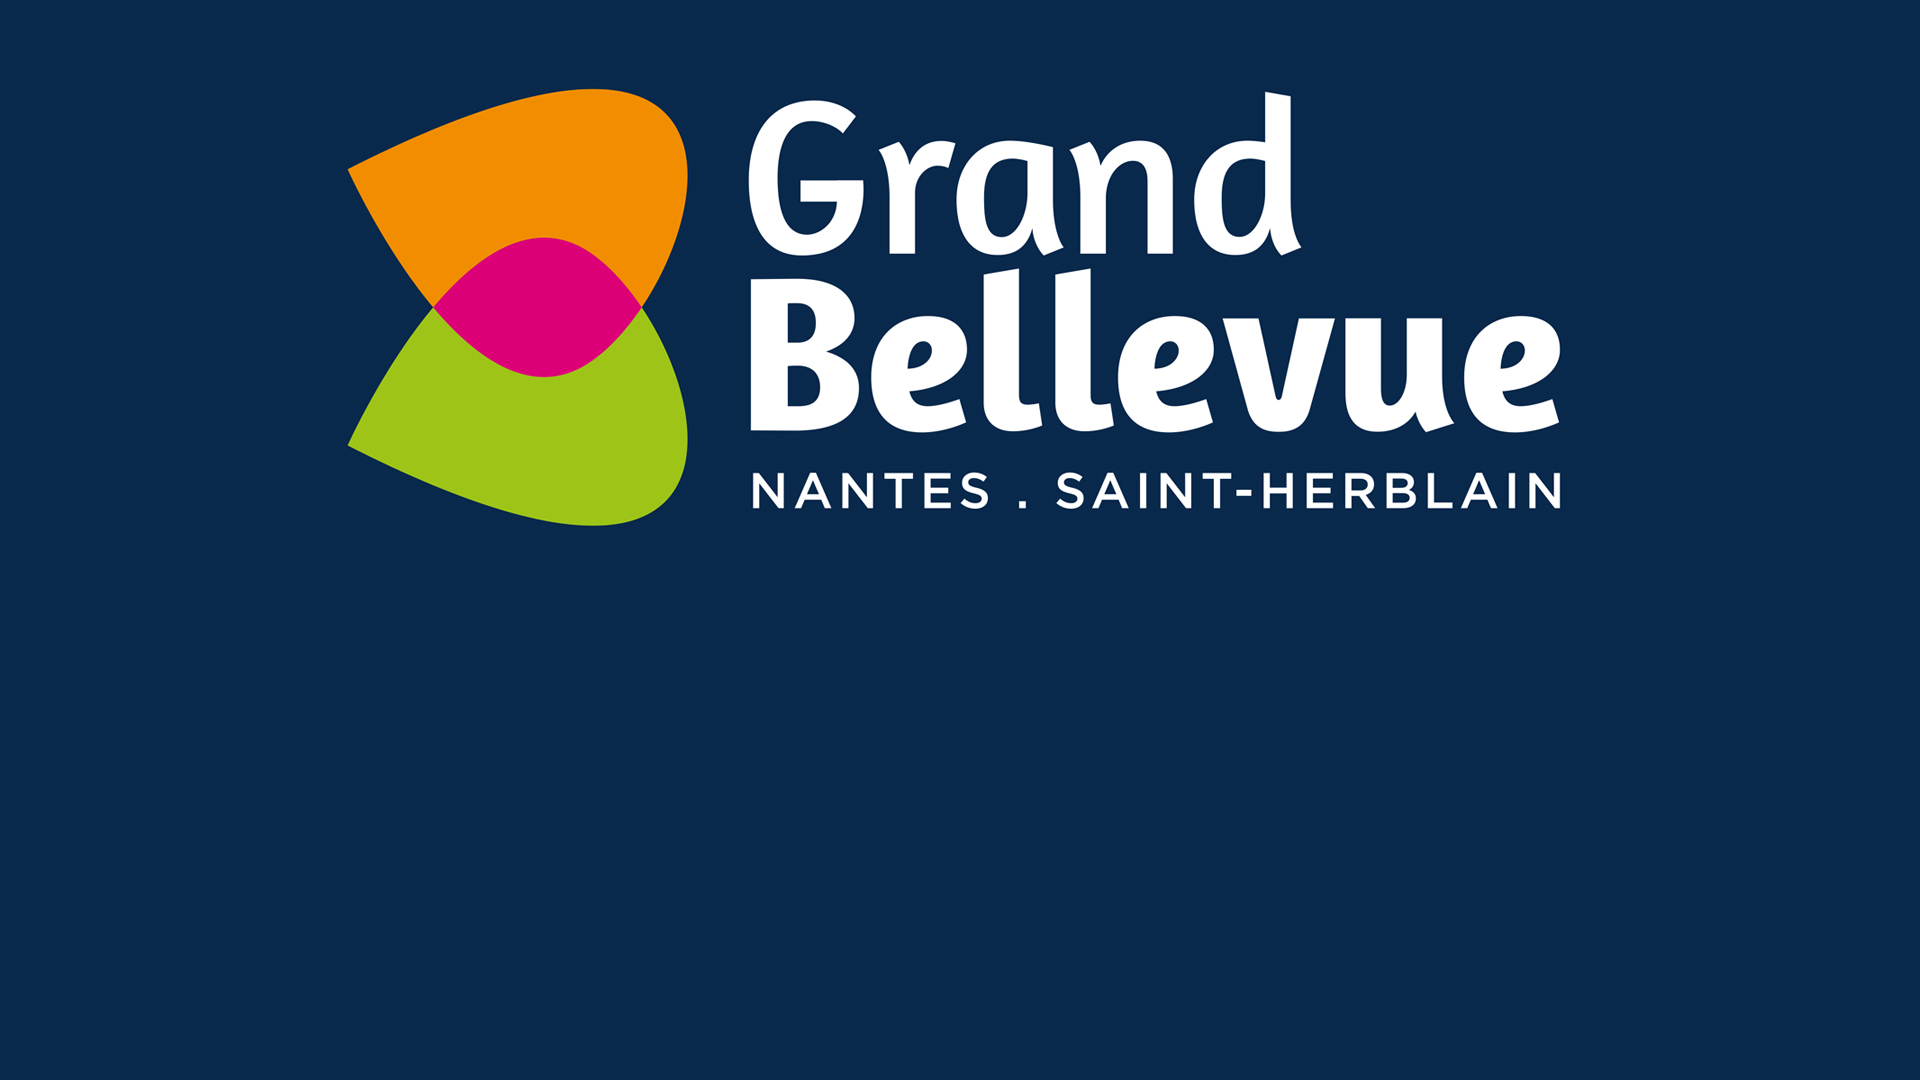 Grand Bellevue : réunion publique le 30 avril !